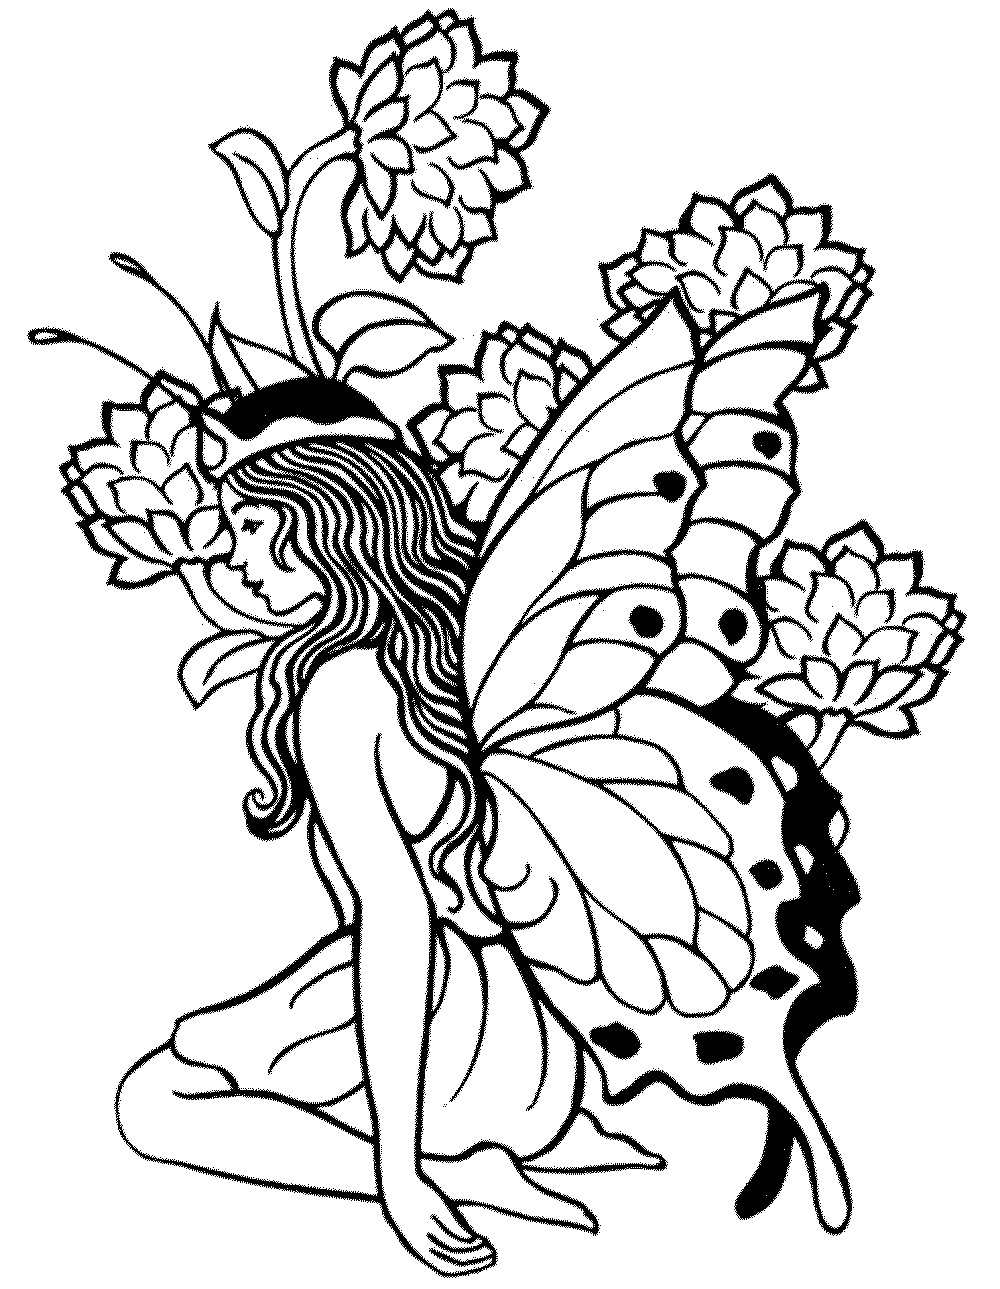 Best ideas about Free Printable Coloring Sheets For Adults . Save or Pin Free Coloring Pages For Adults Printable Detailed Image 23 Now.